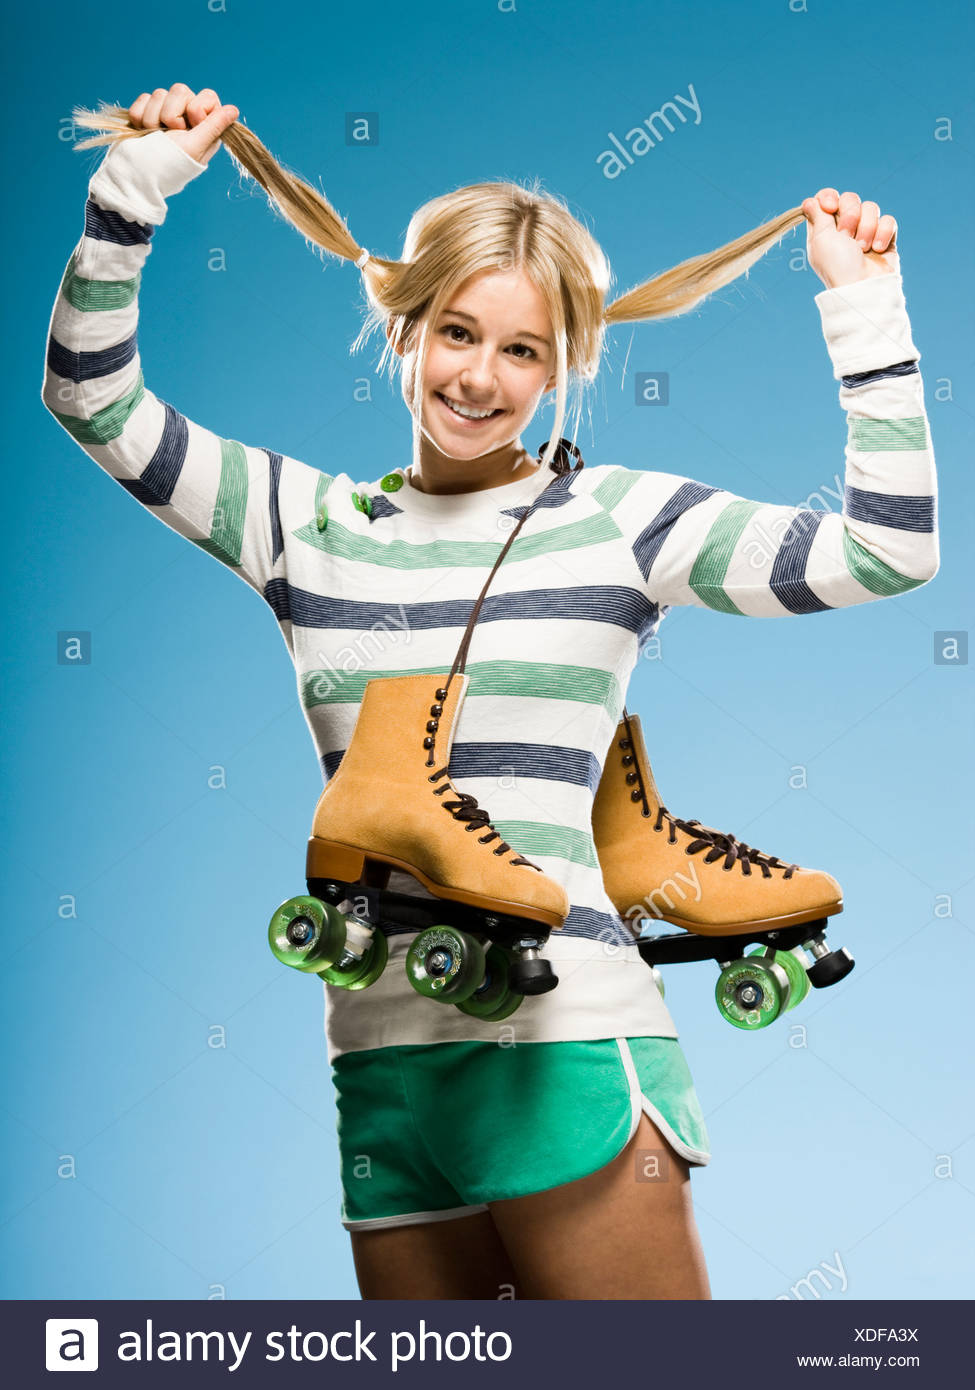 Studio portrait of young woman with roller skates - Stock Image